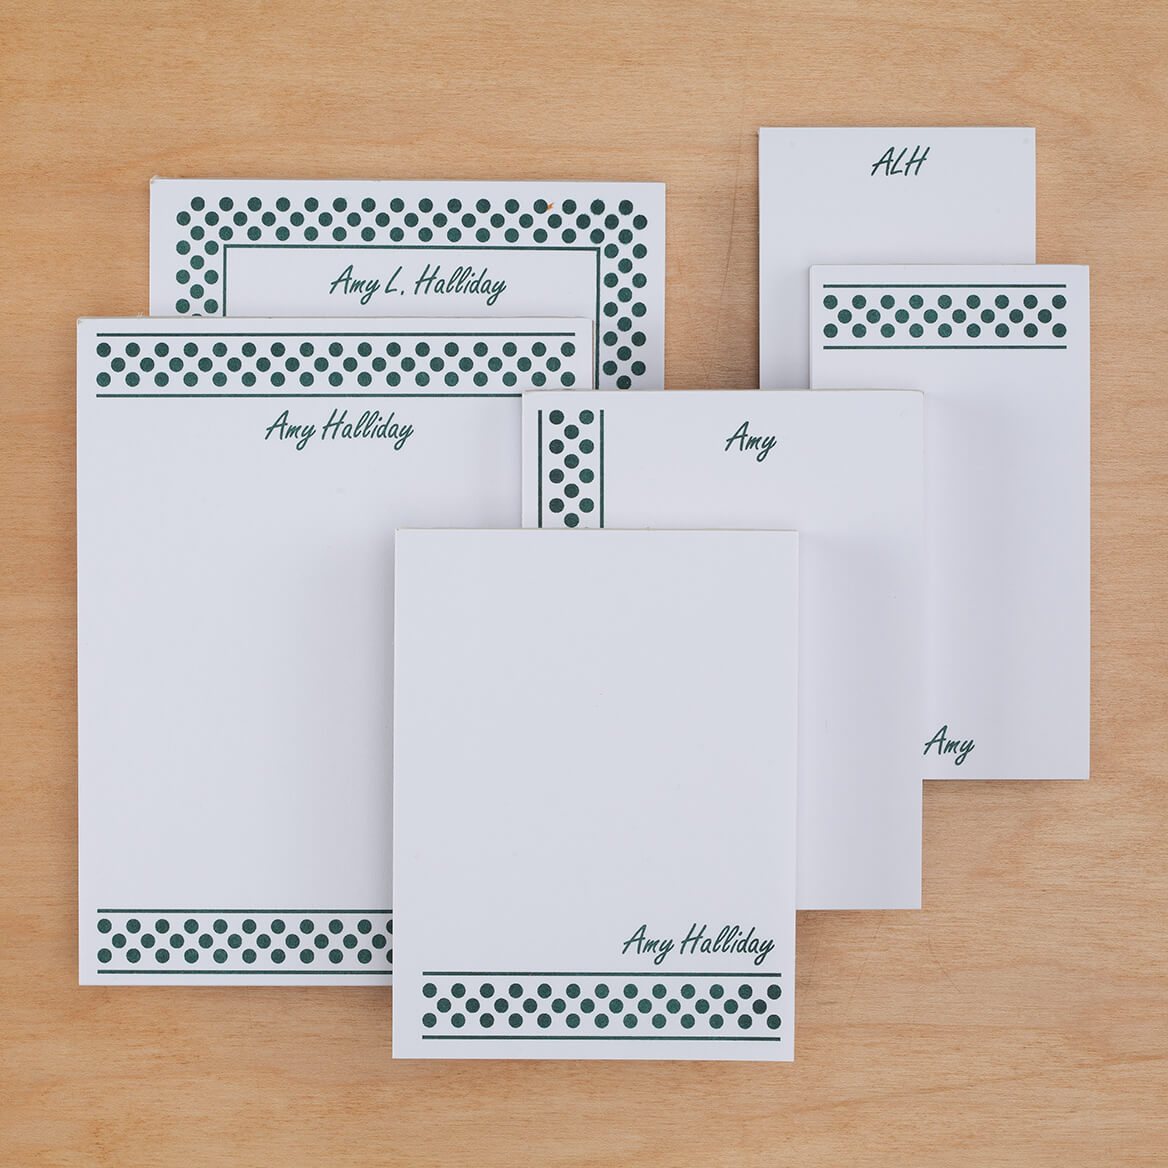 Personalized Polka Dots Basketful of Notepads Refill Set of 6-349462